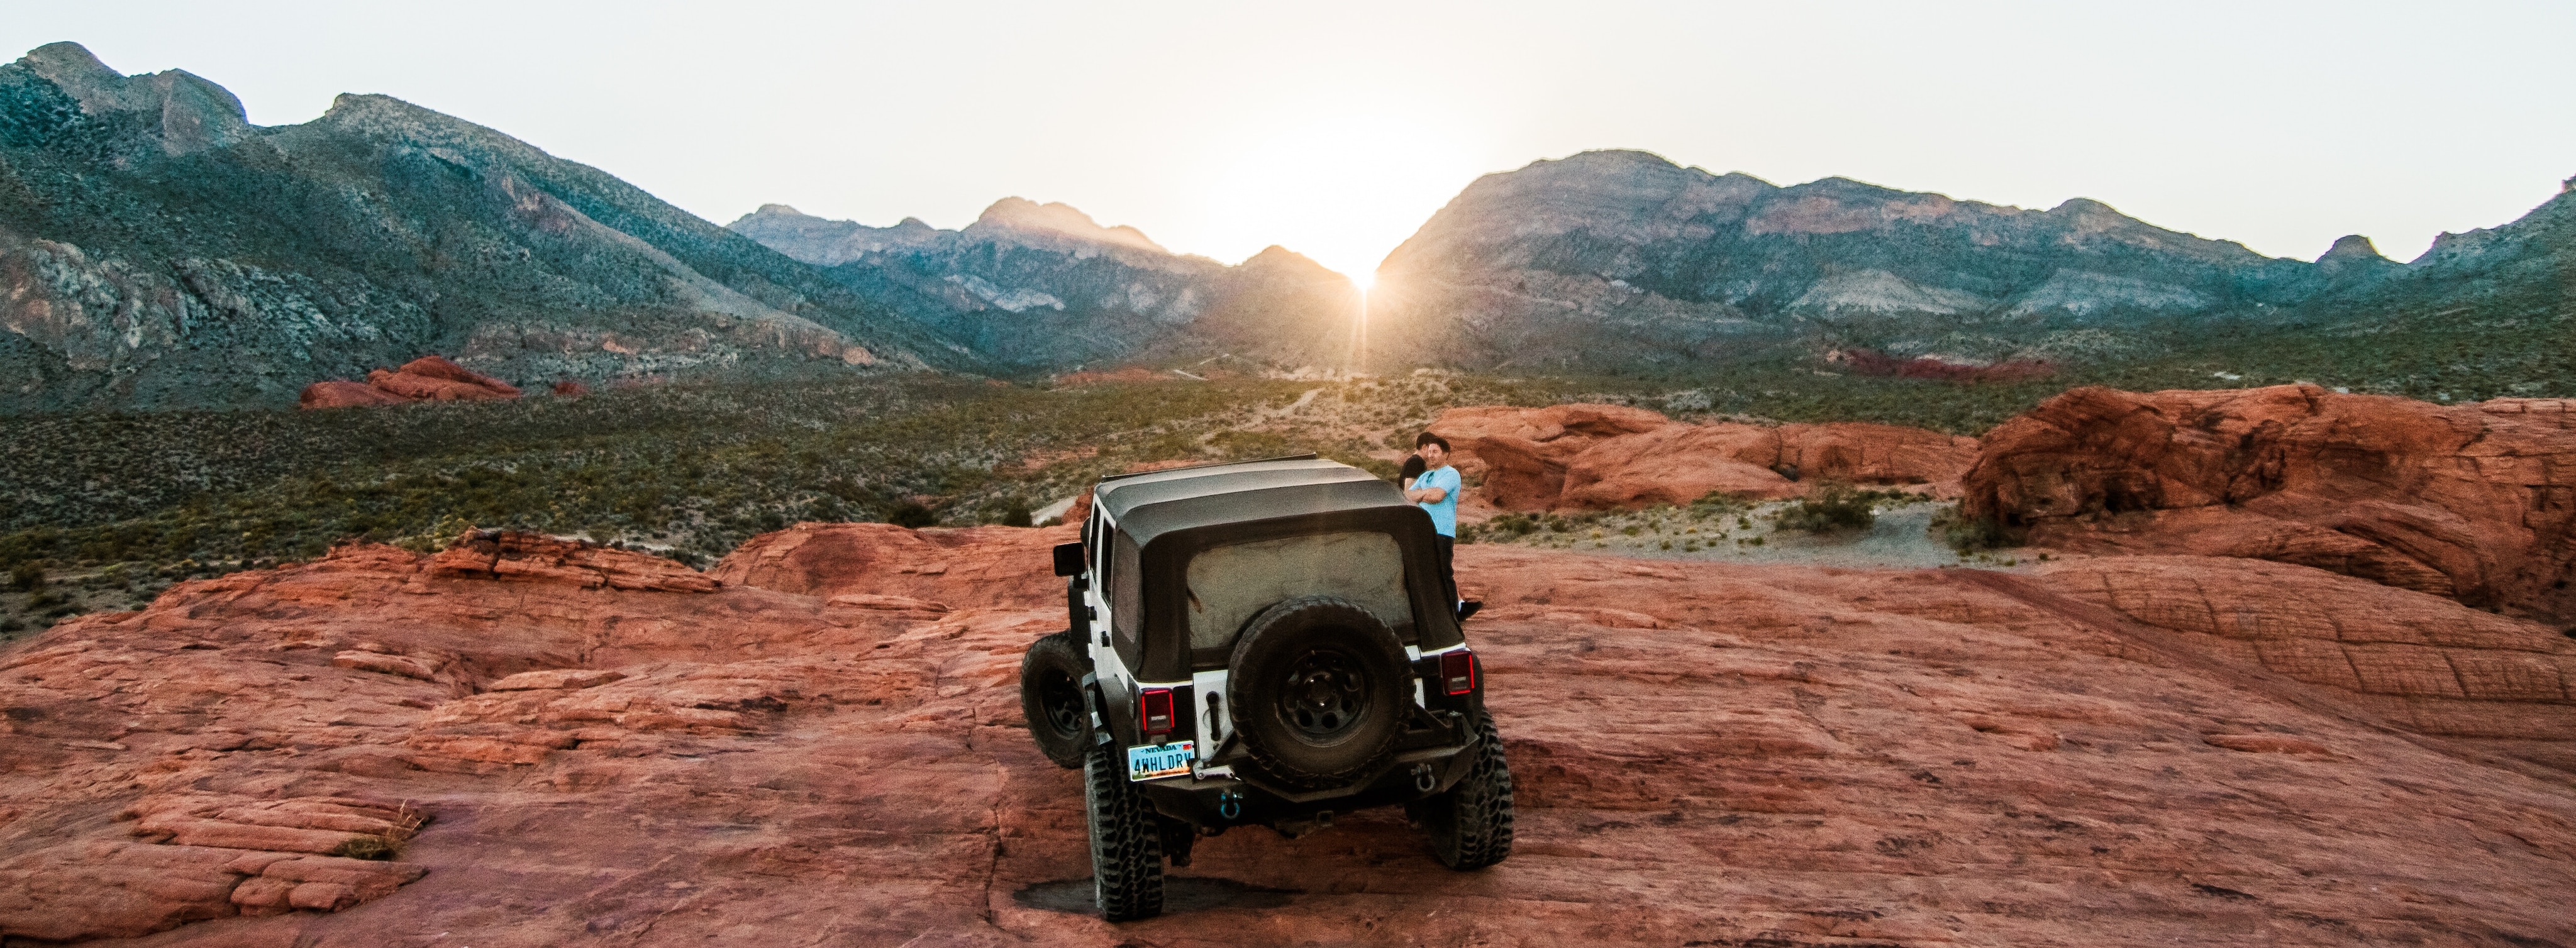 What does 4x4 mean: 4x4 Jeep off-roading on rocks